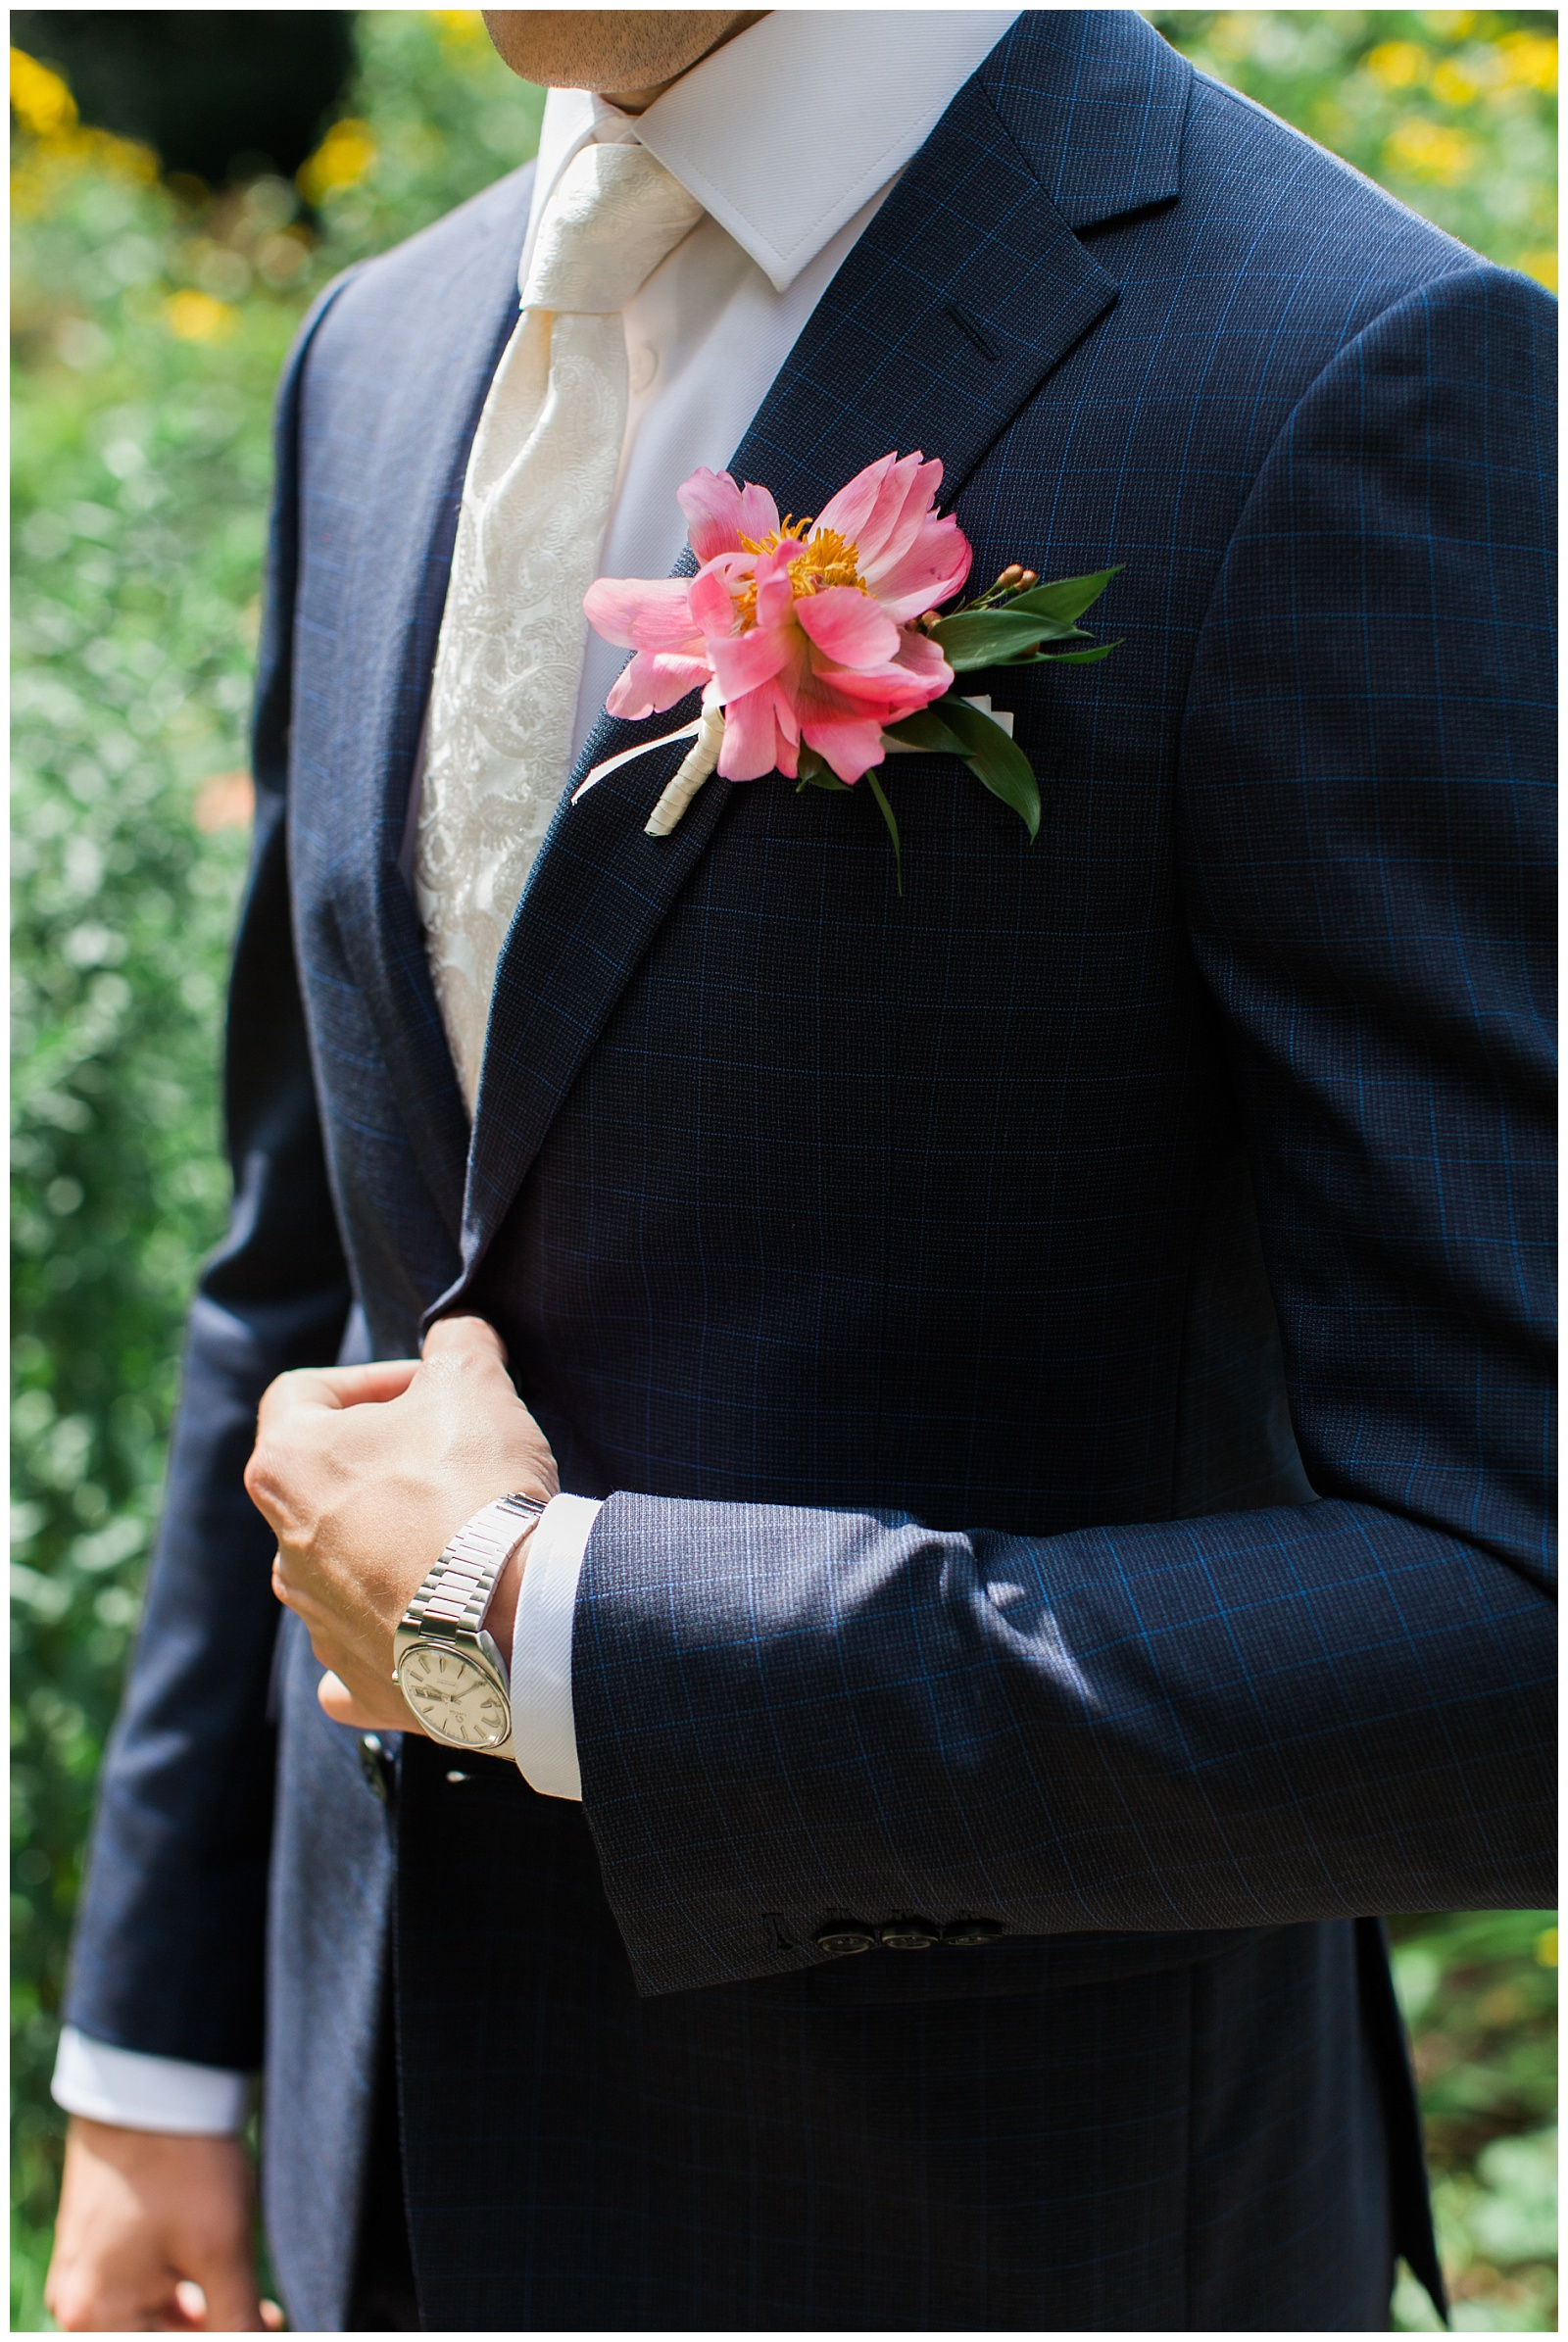 Close up of groom attire Navy pinstripe suit and pink boutonniere